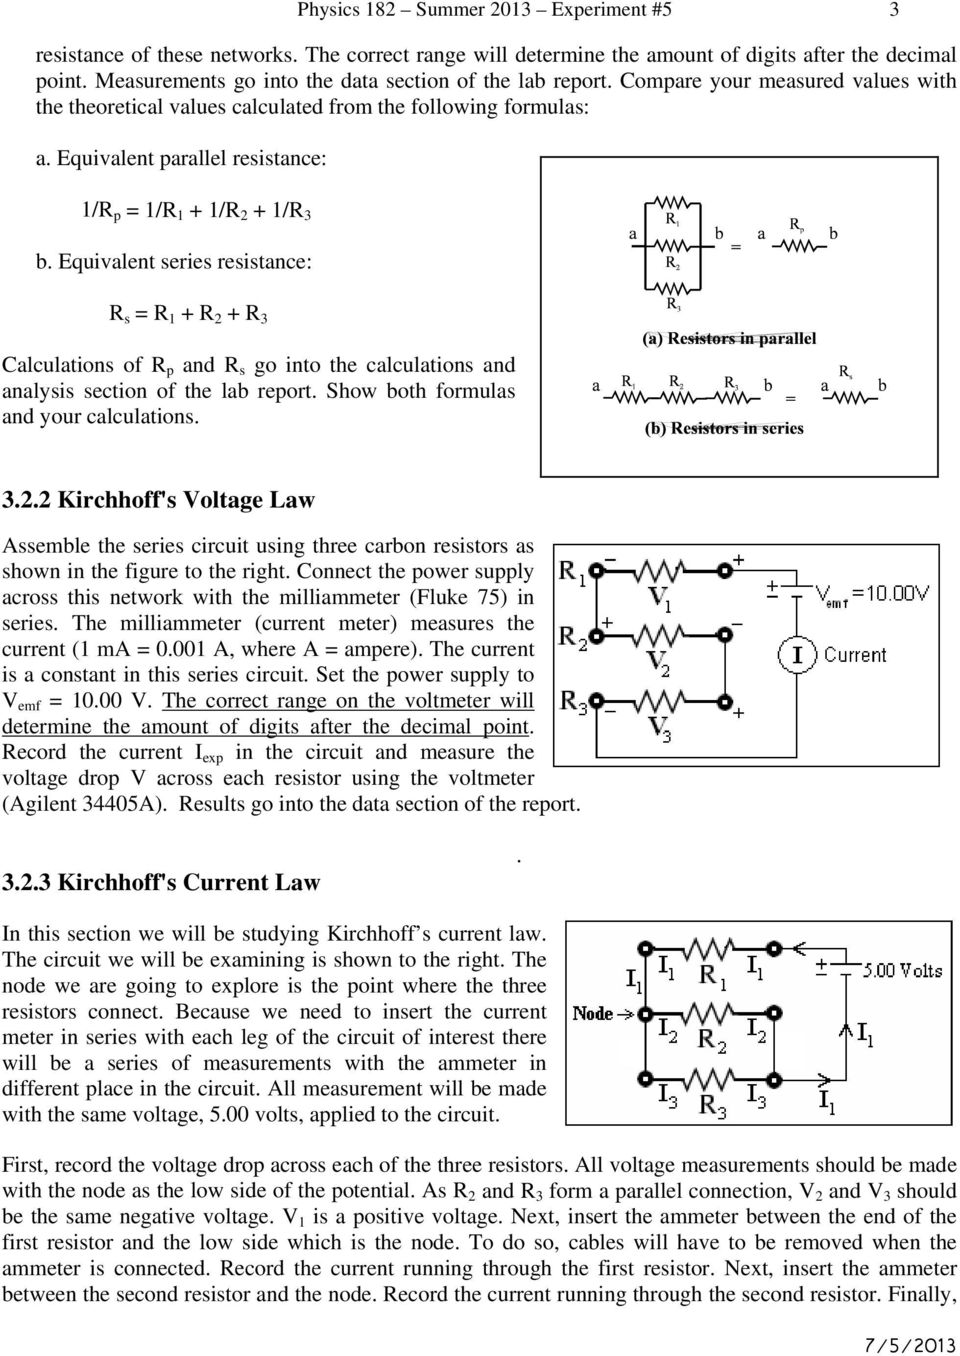 Experiment 5 Series And Parallel Circuits Kirchhoff S Laws Pdf Dc Circuit Analysis Voltage Divider Part 1 Equivalent Resistance R P